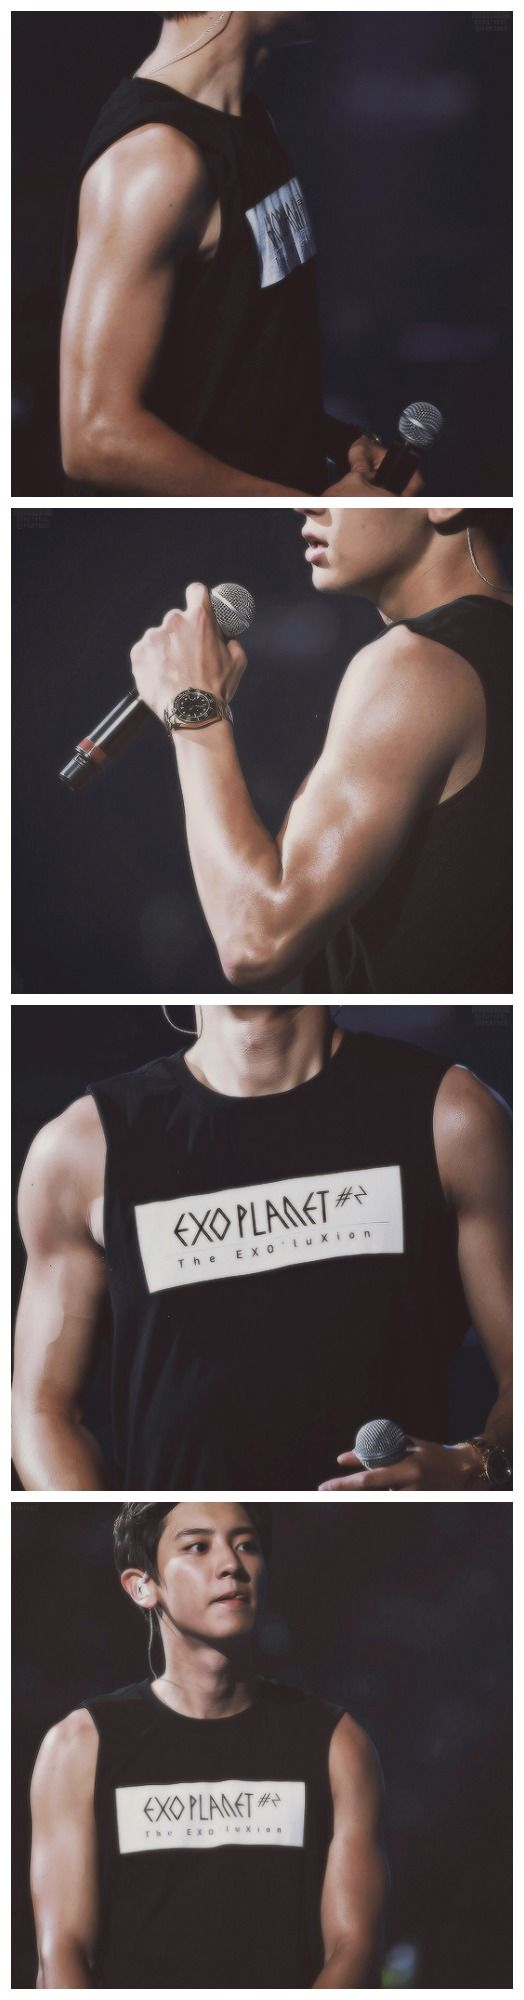 chanyeol  39 s guns appreciation post   damn he has been working out omg beffy arms lol